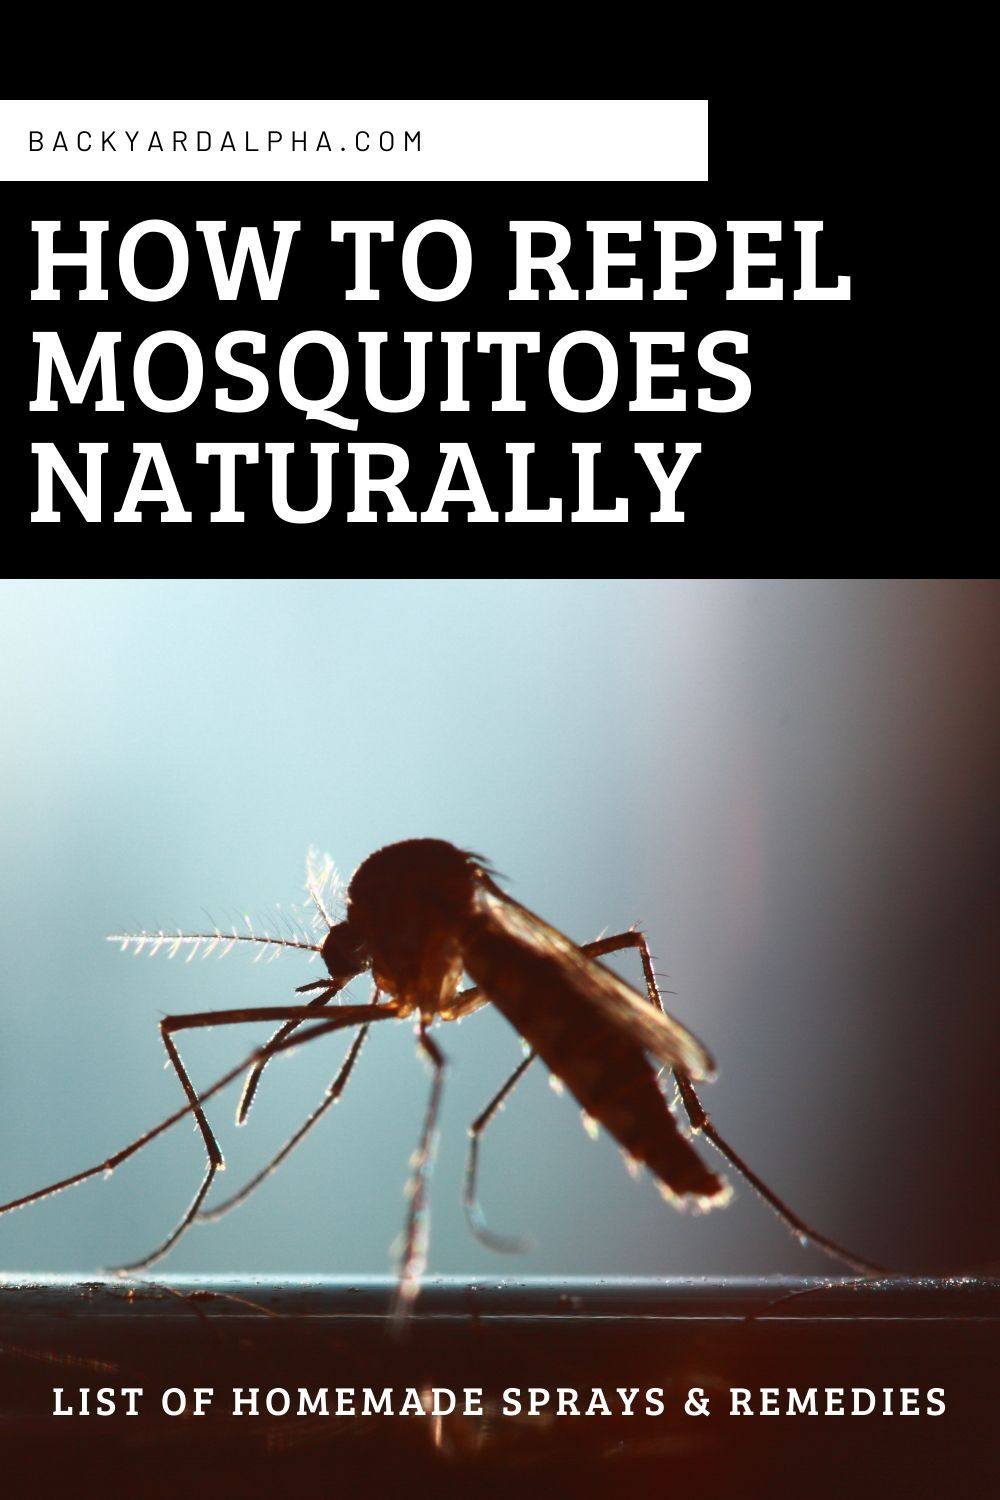 How To Repel Mosquitoes Naturally With Homemade Sprays